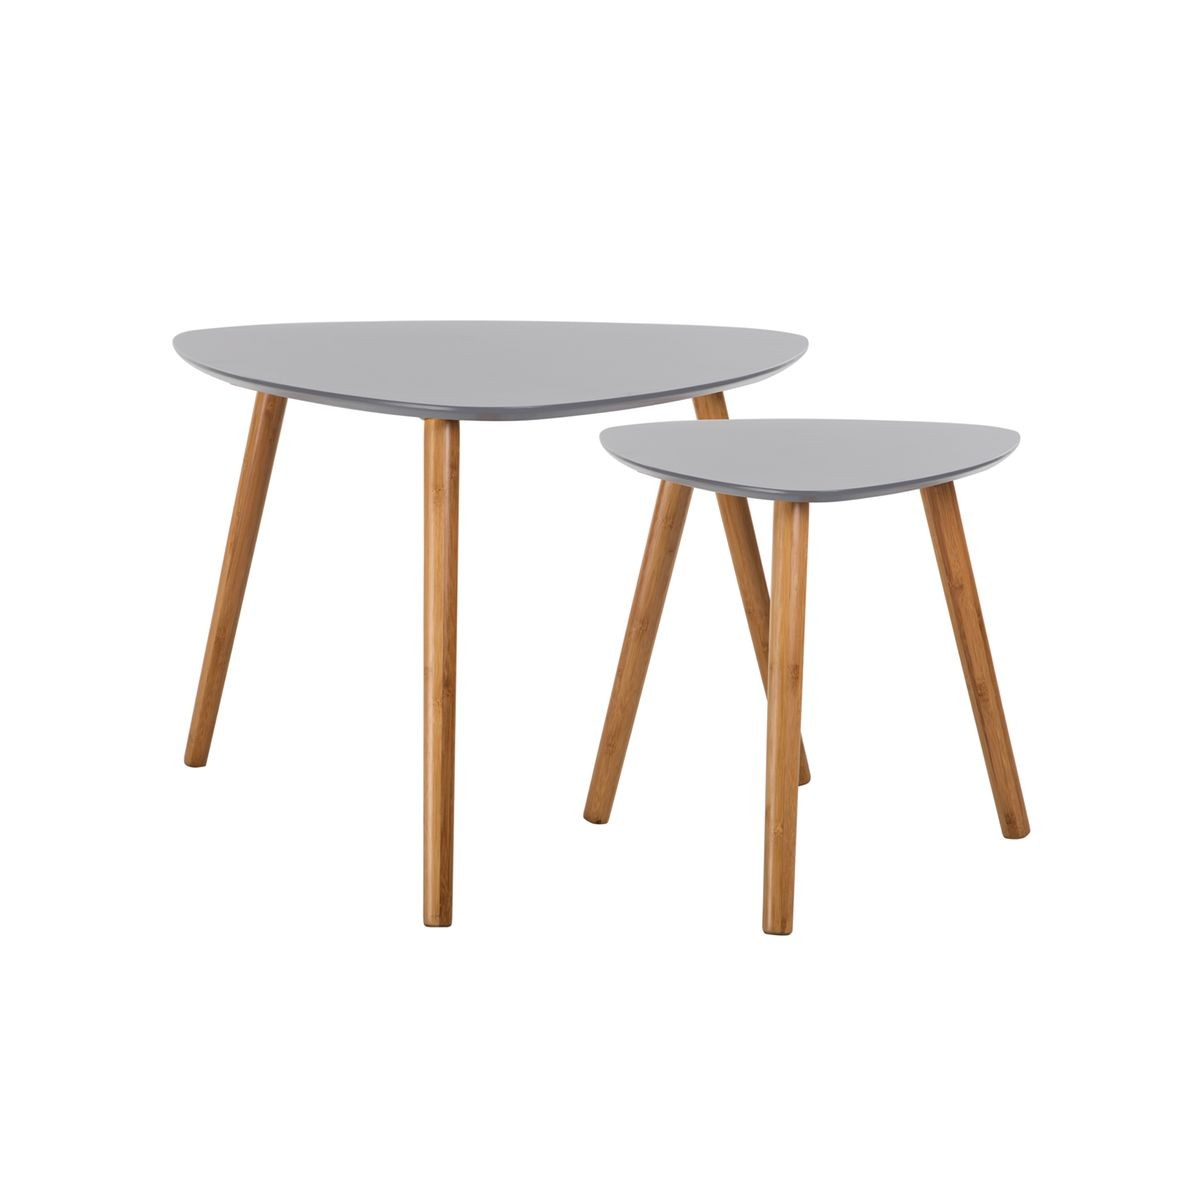 Table basse scandinave chic